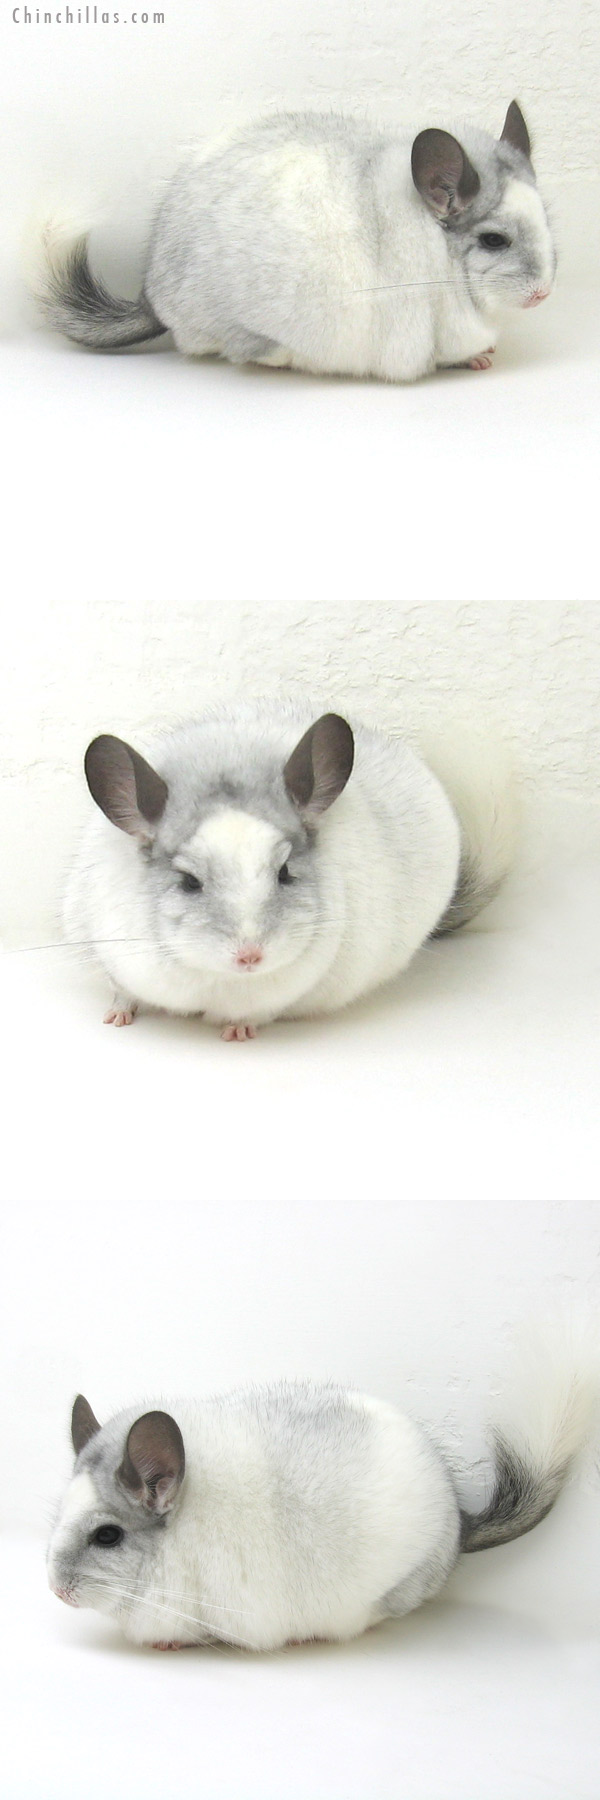 12169 Blocky, XXXL Show Quality White Mosaic Male Chinchilla